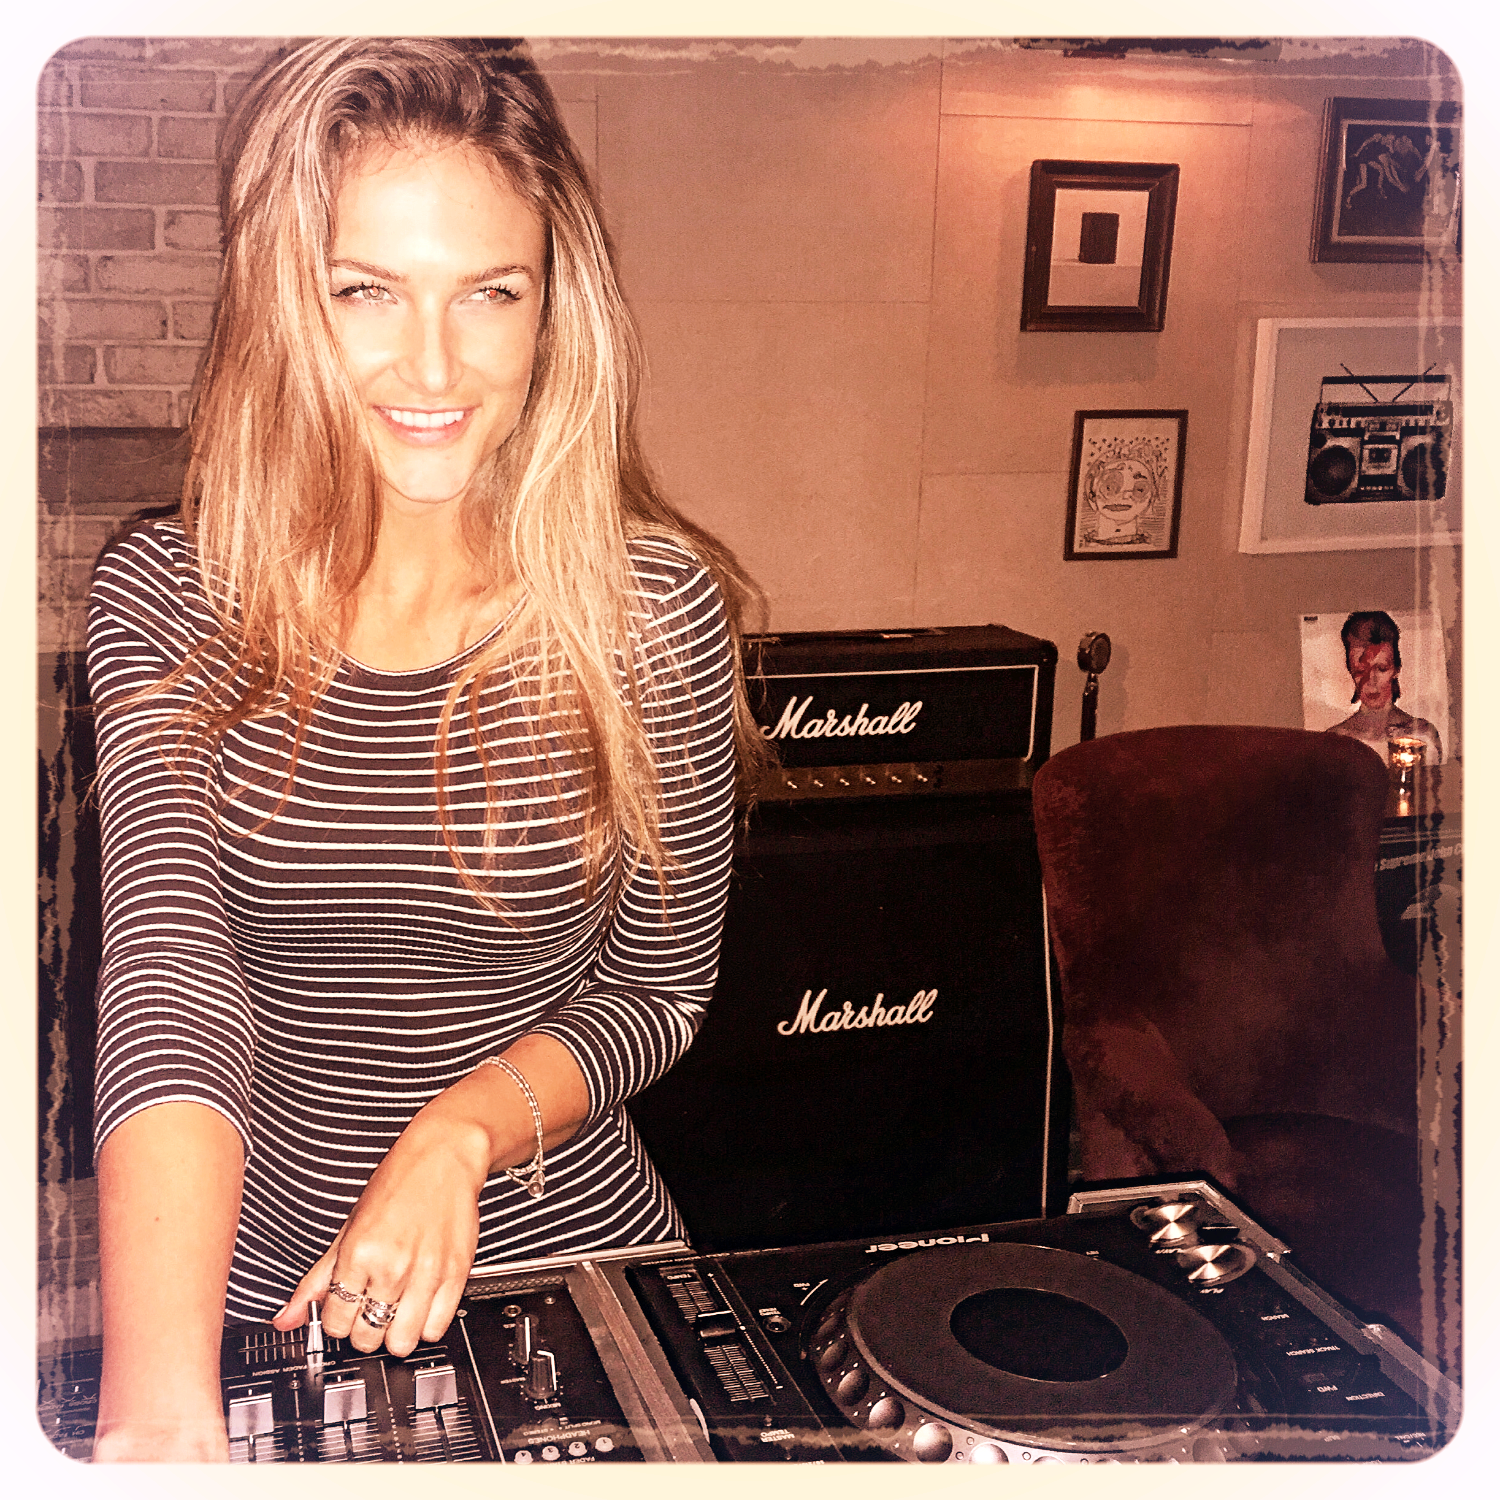 Dj Bad Ash at Soho House NYC